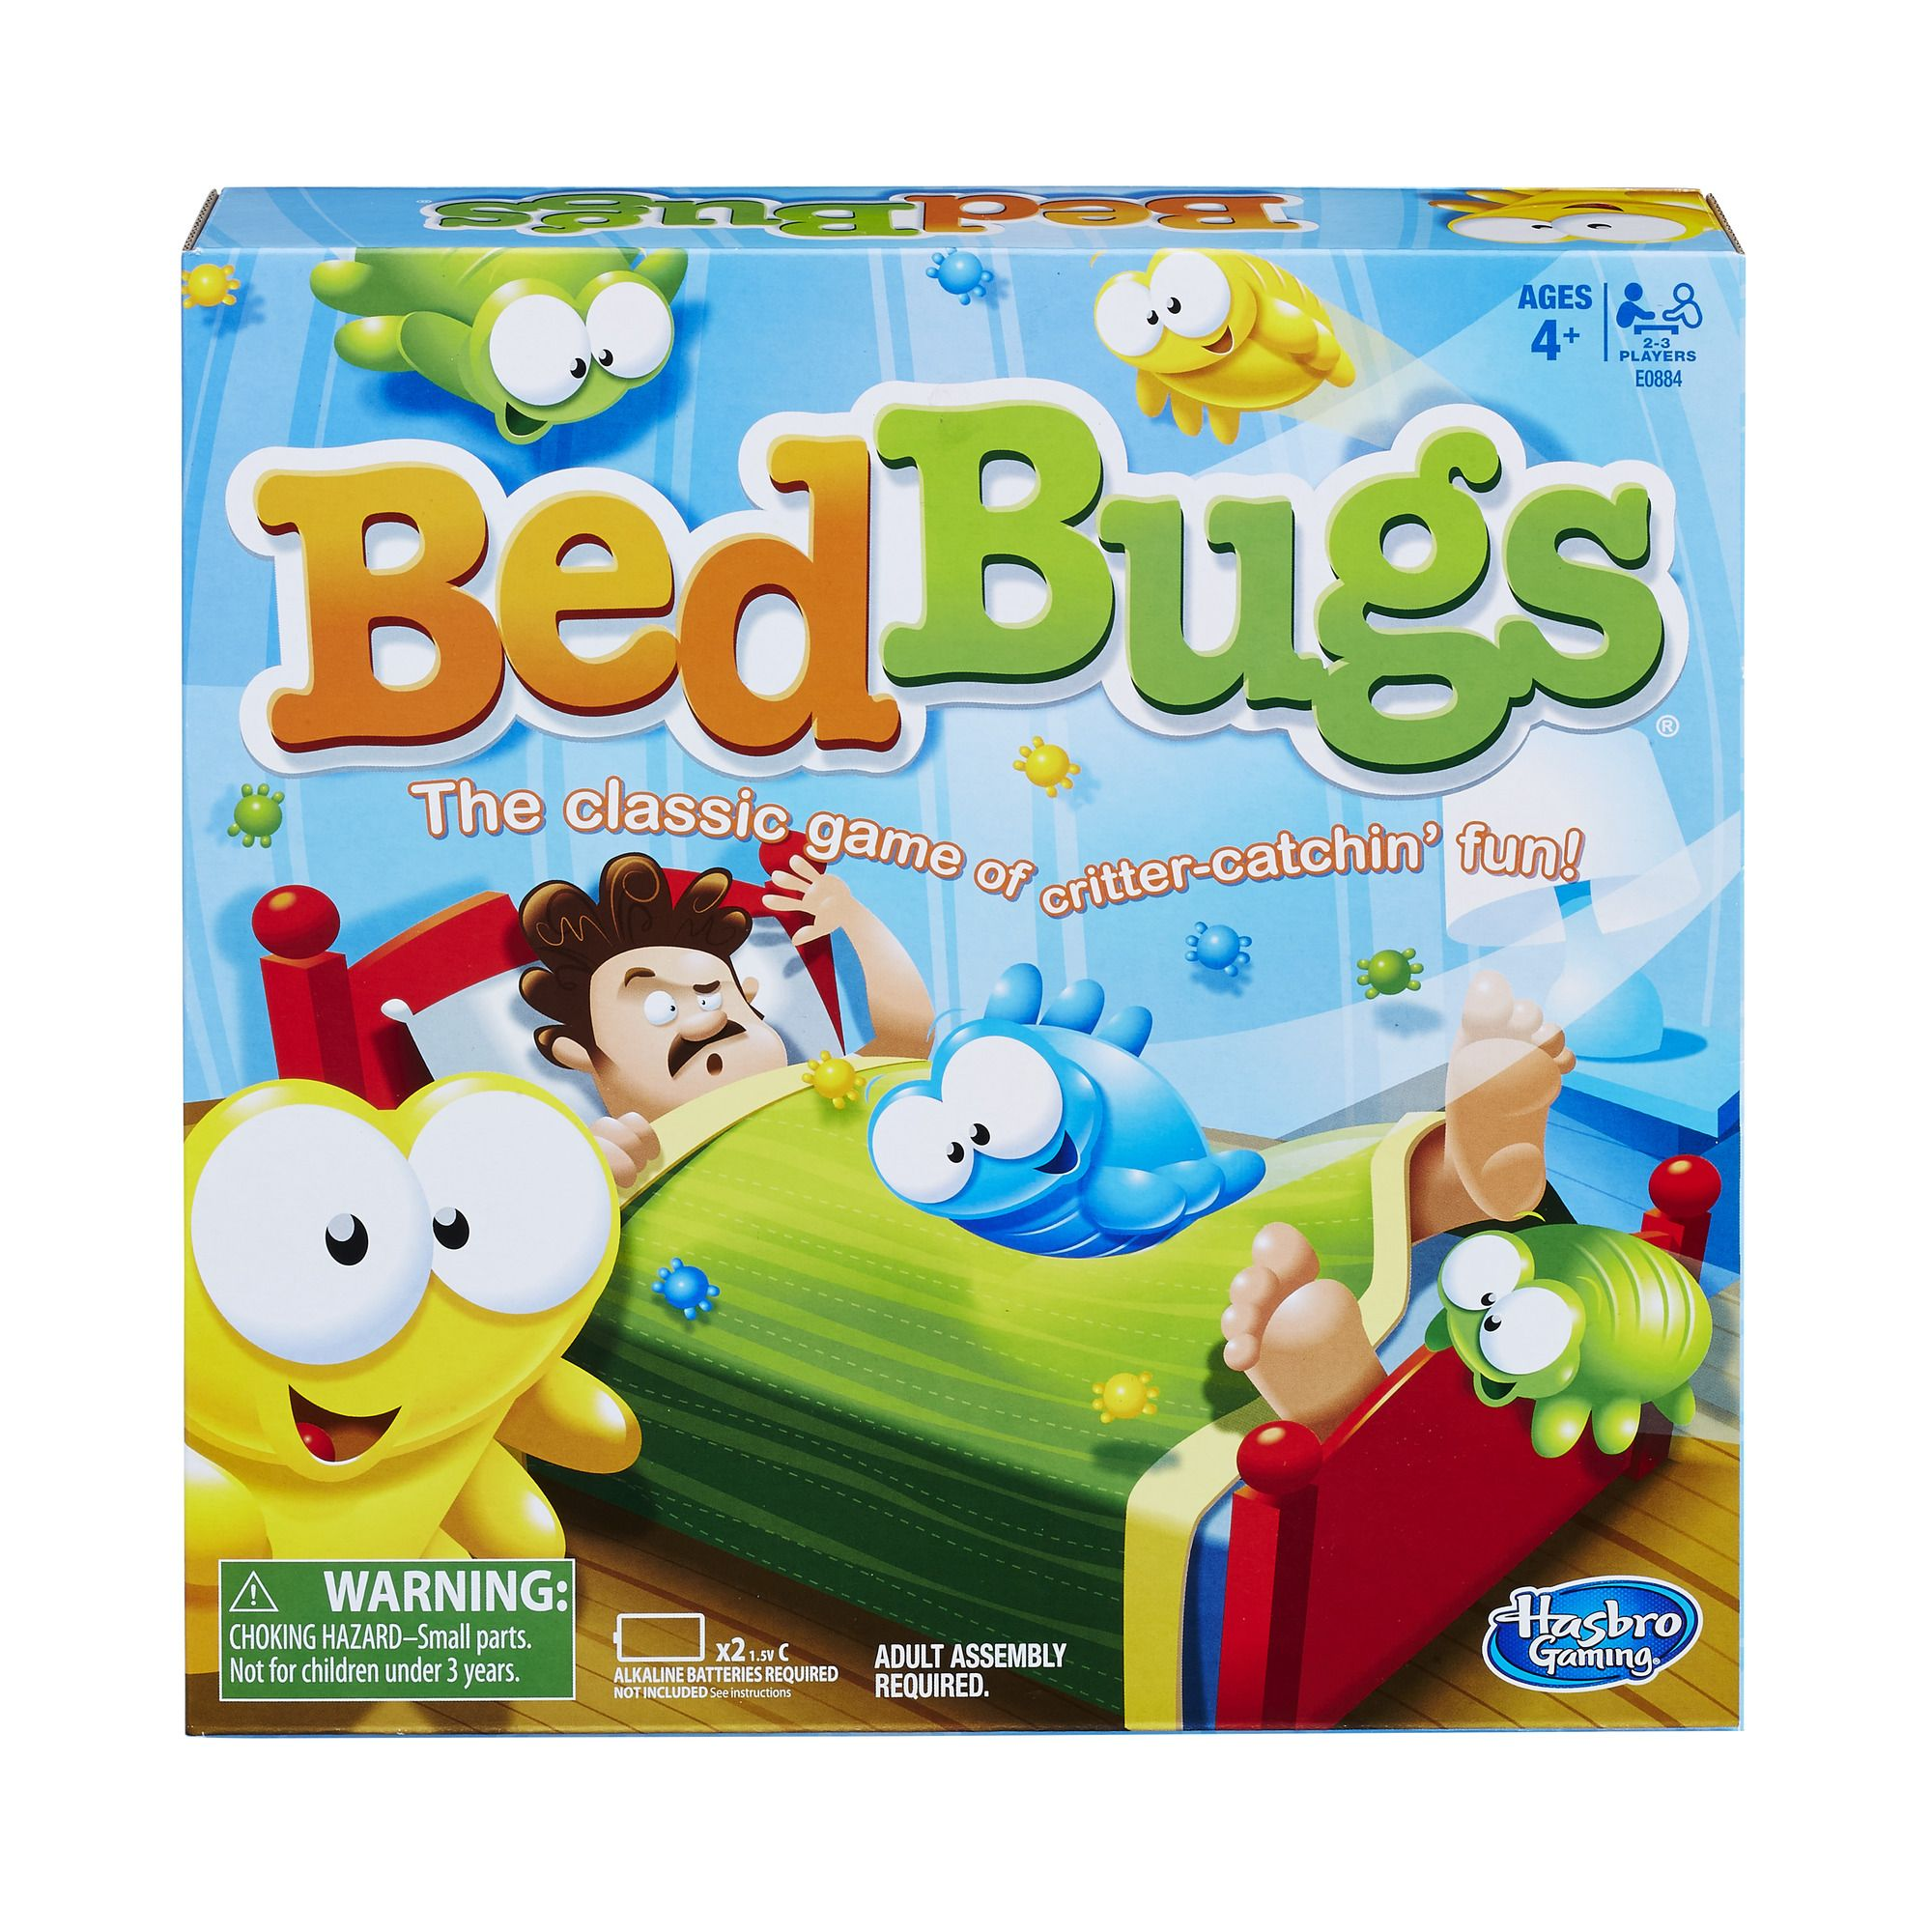 Hasbro Bed Bugs Game Bug games, Bed bugs, Family board games